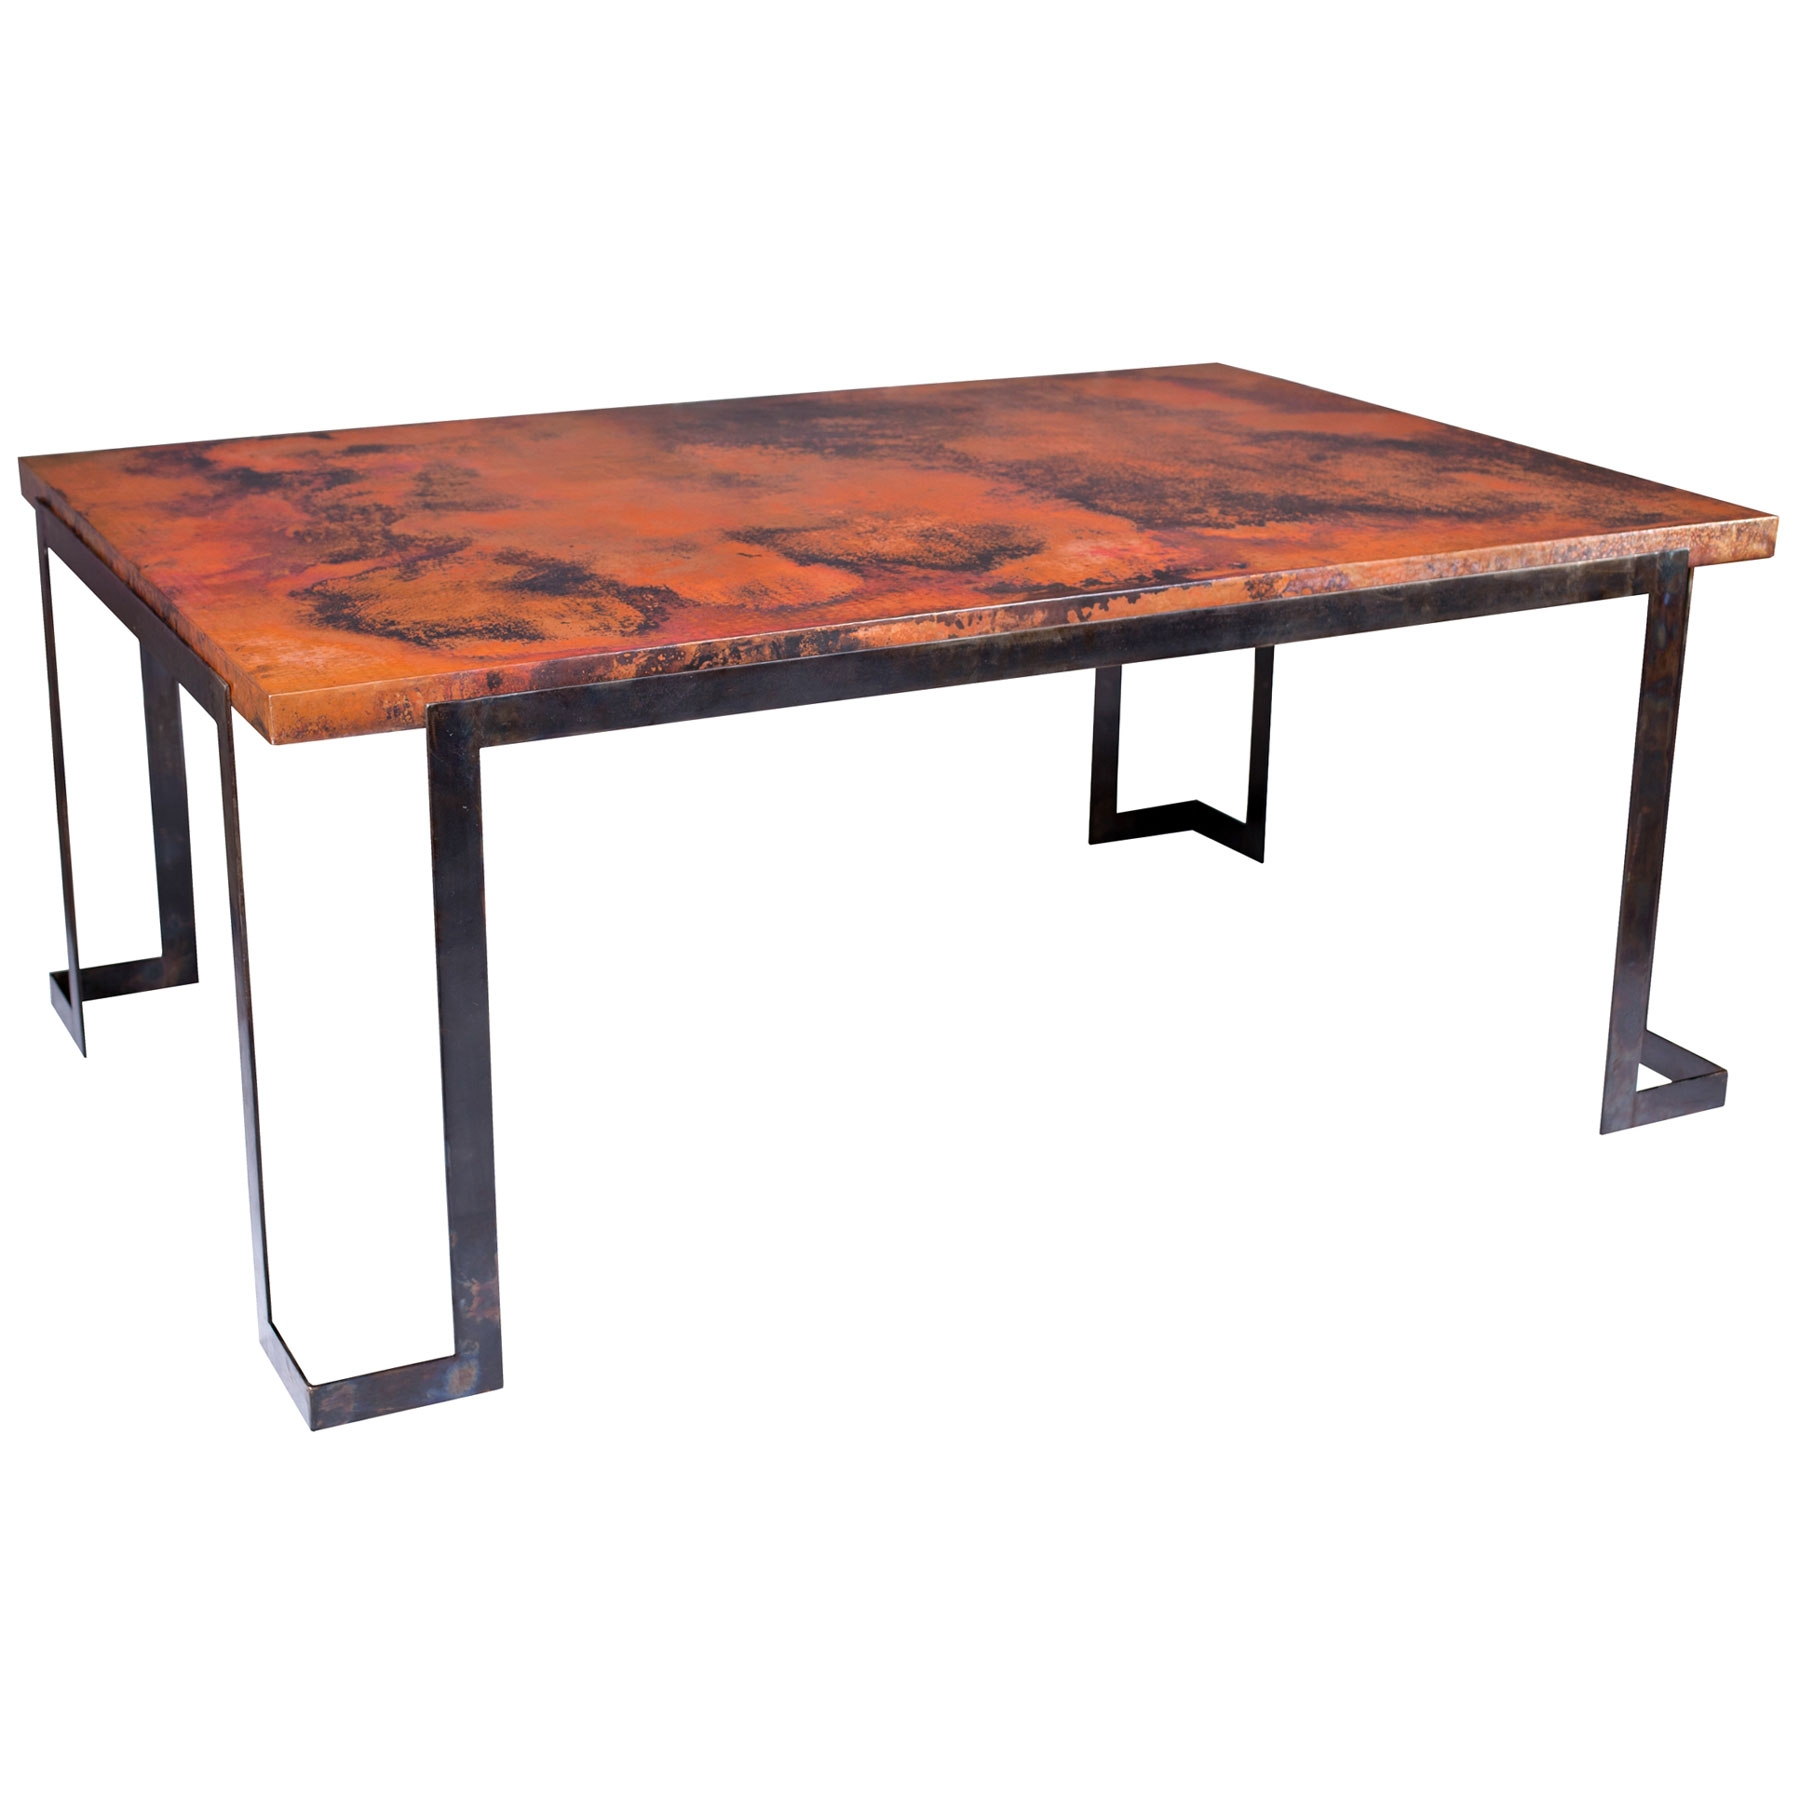 rectangle dining table with wrought iron base and copper table top